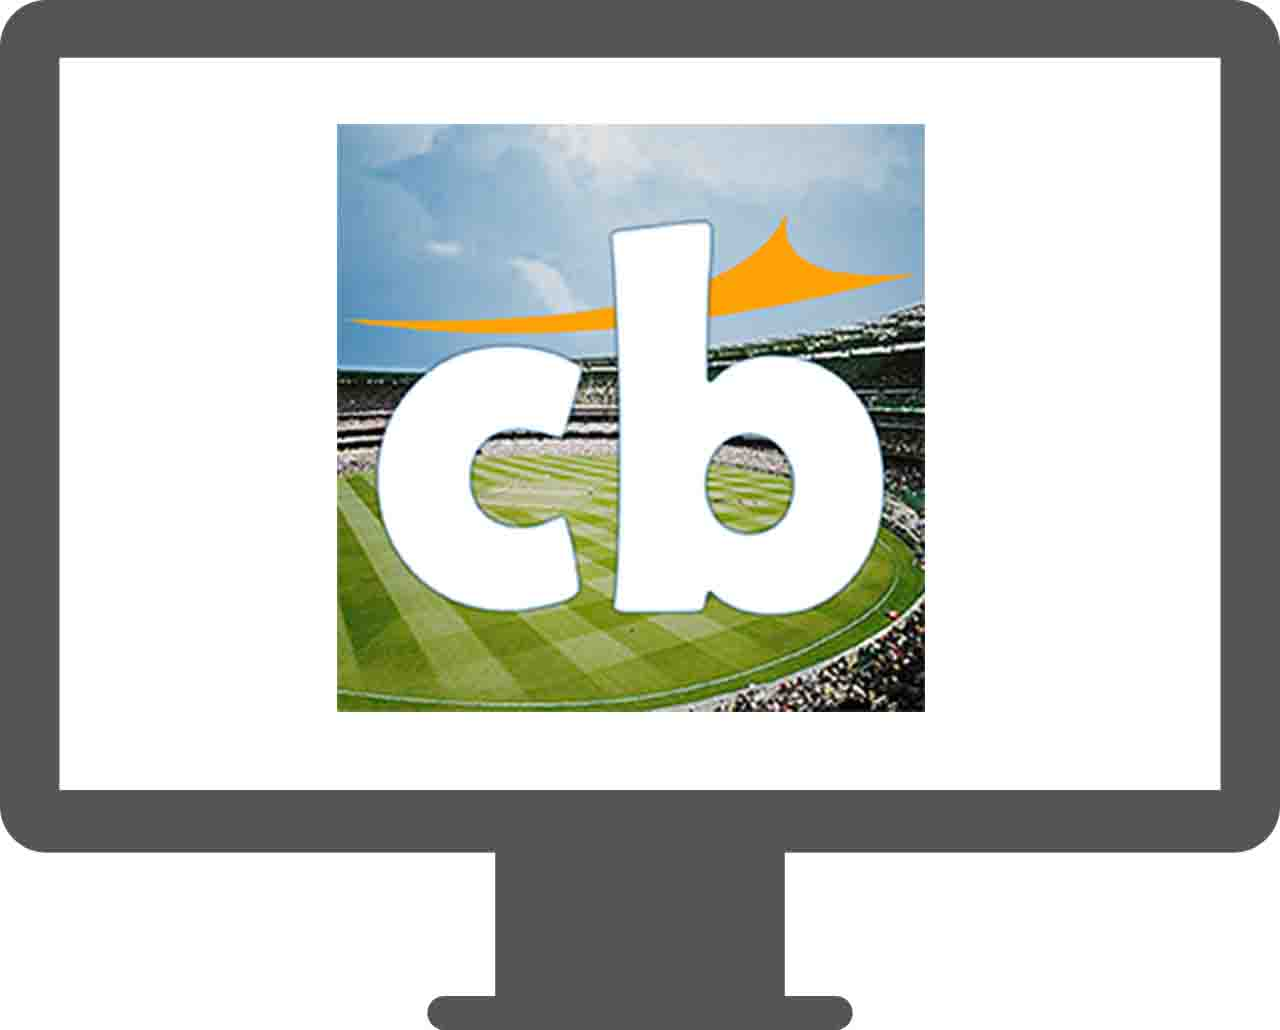 Download Cricbuzz For PC free